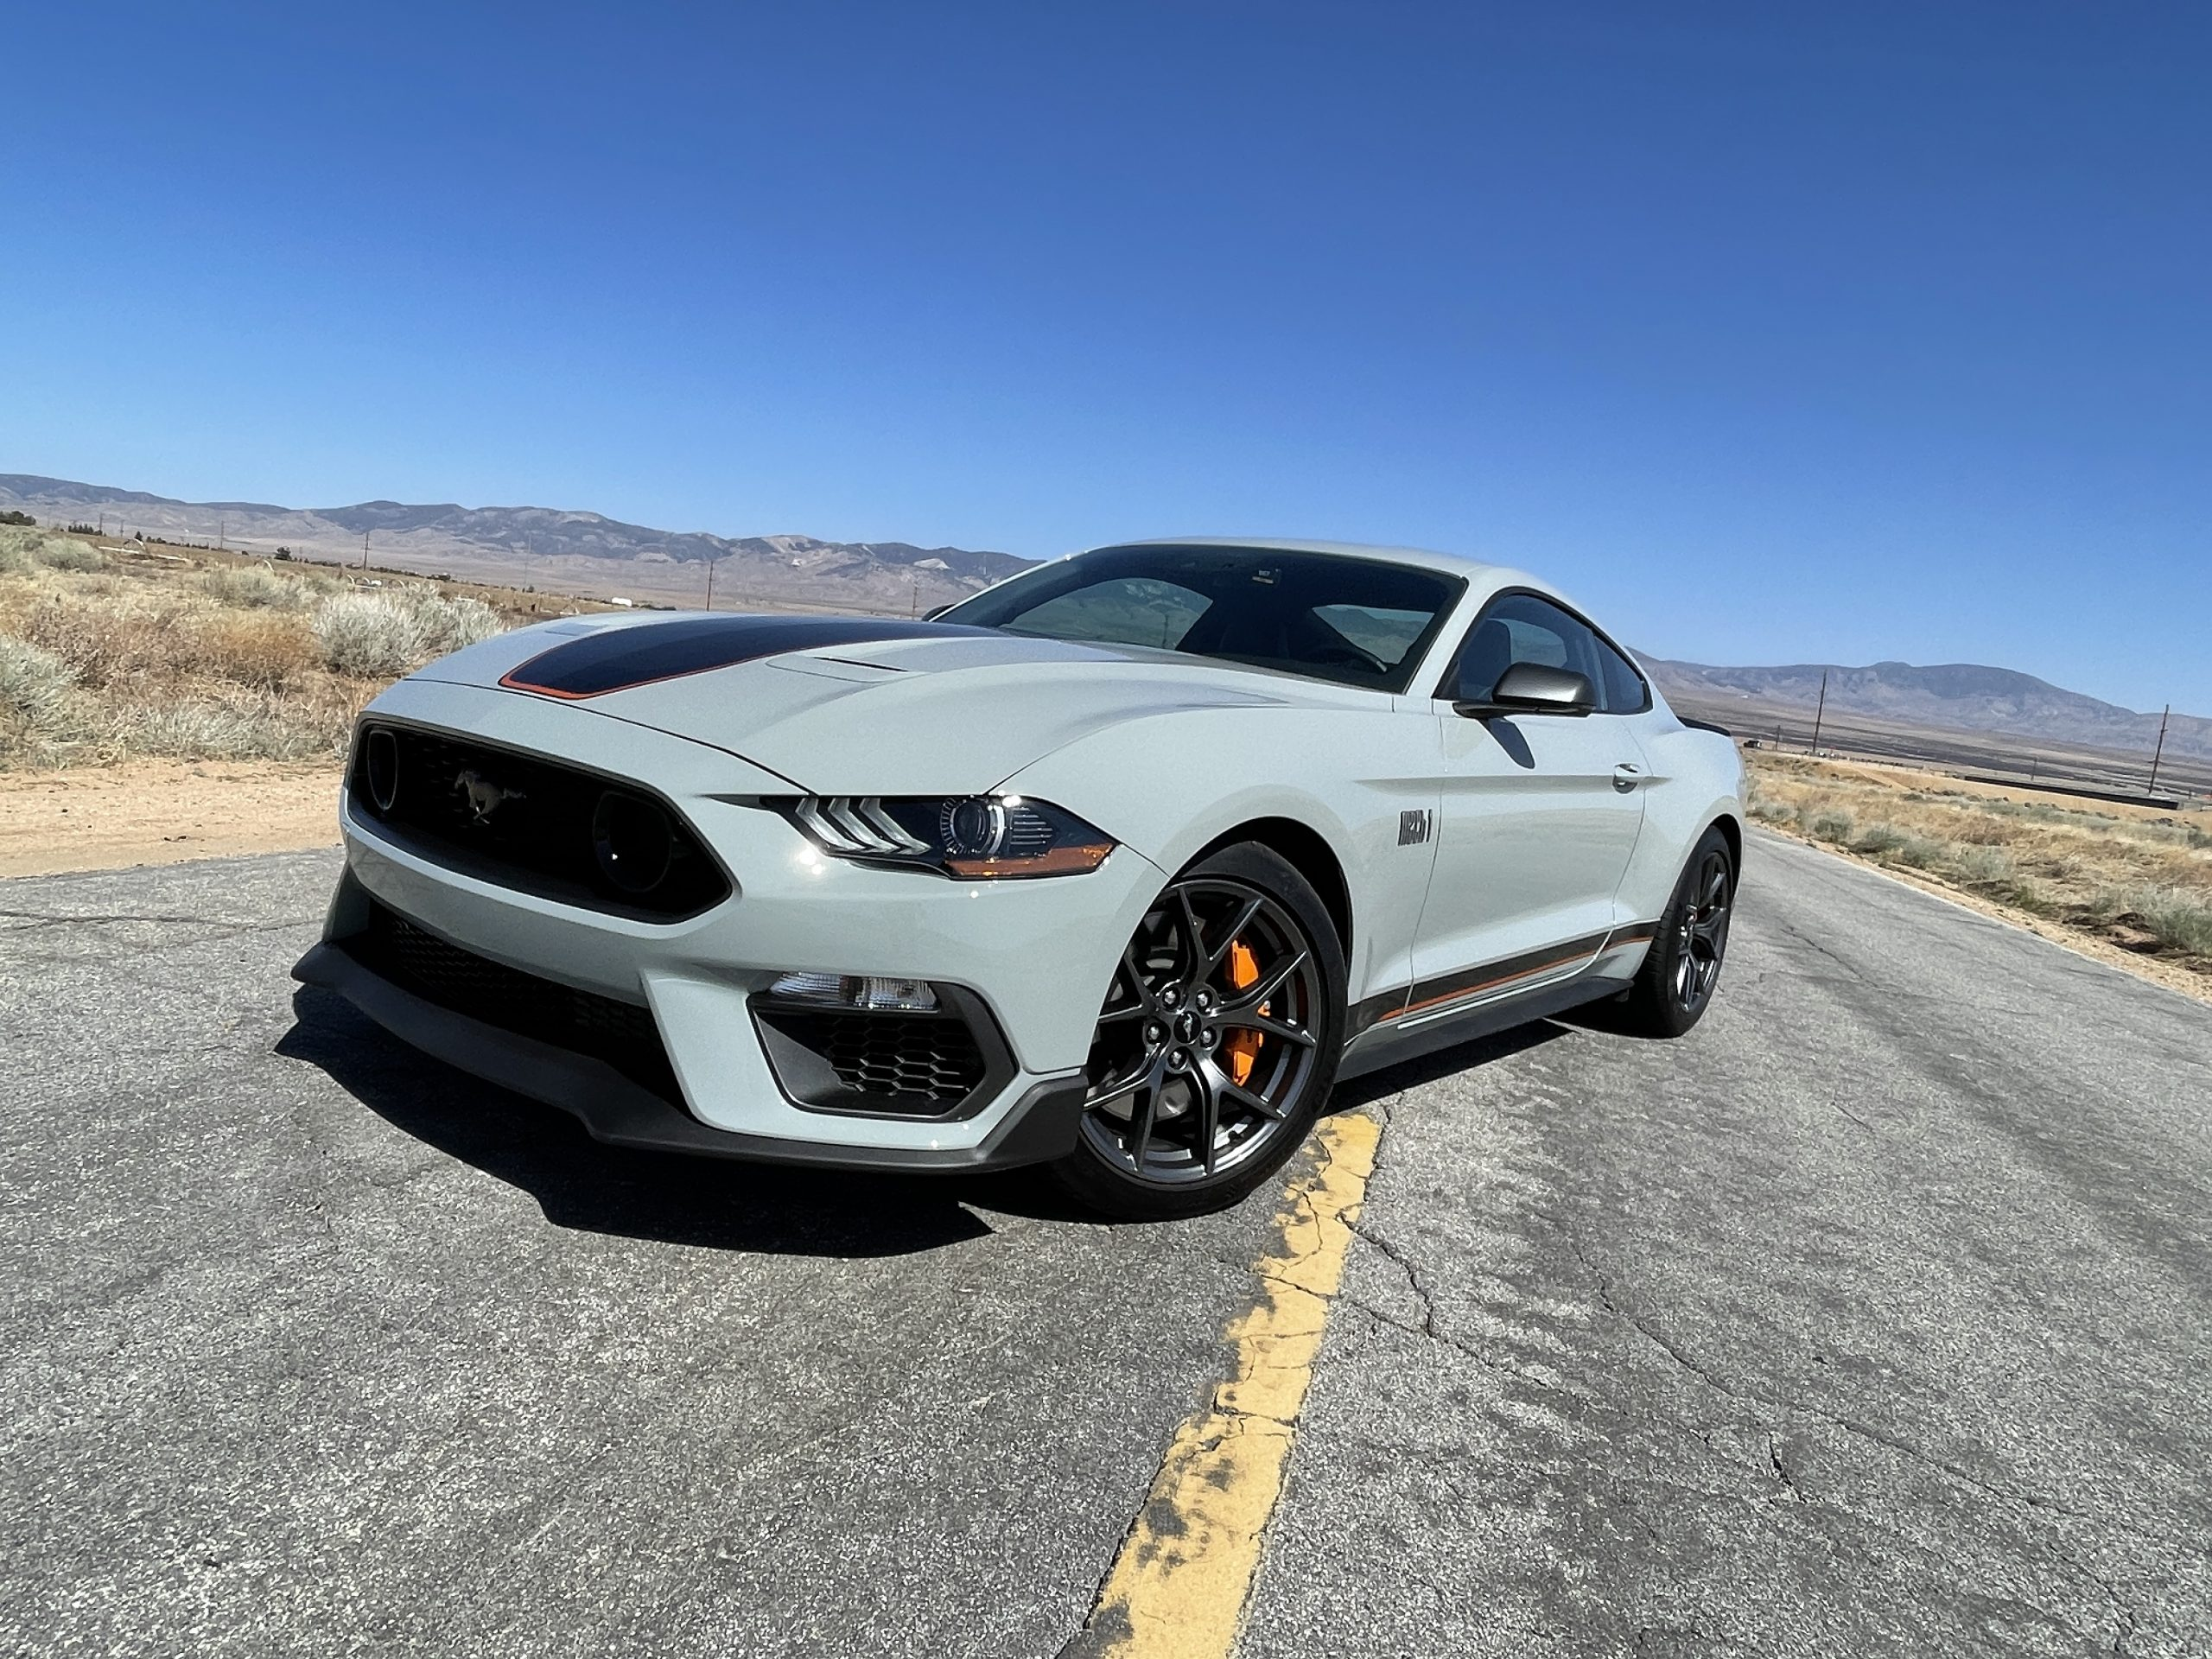 New Mustang Mach 1 front three-quarter offset